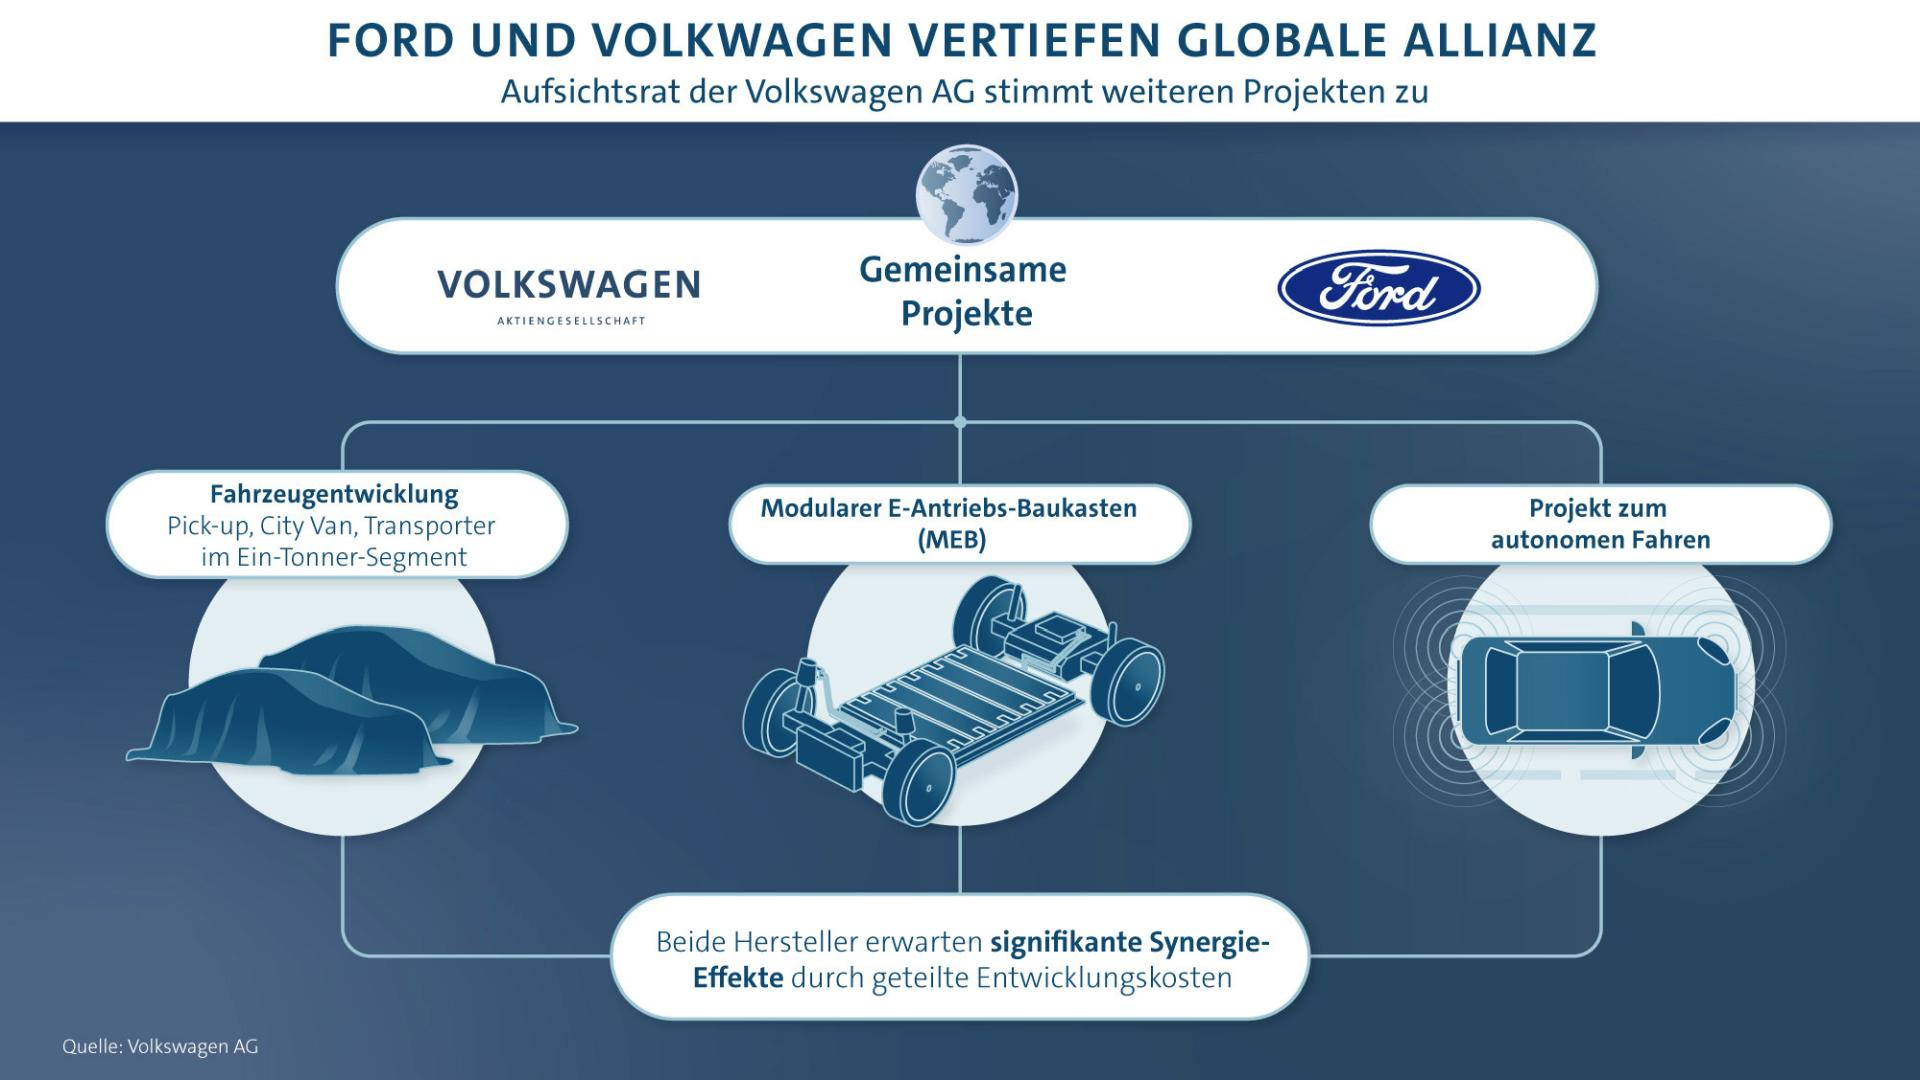 Globale Ford – Volkswagen Allianz nimmt Form an